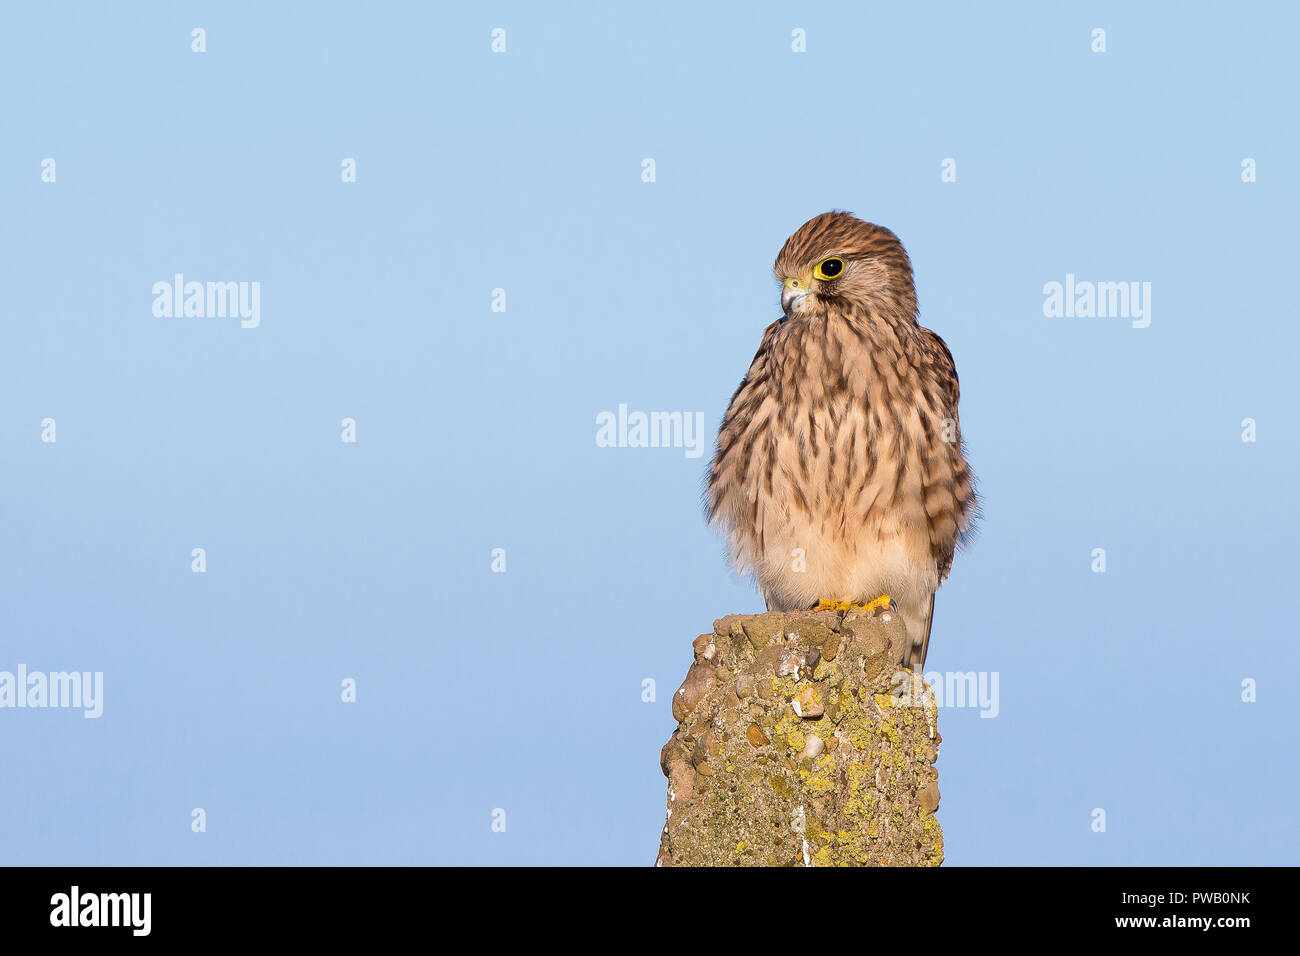 Detailed, landscape close up of a single wild kestrel (Falco tinnunculus) perched on a post, high in the air, against a blue sky background. - Stock Image